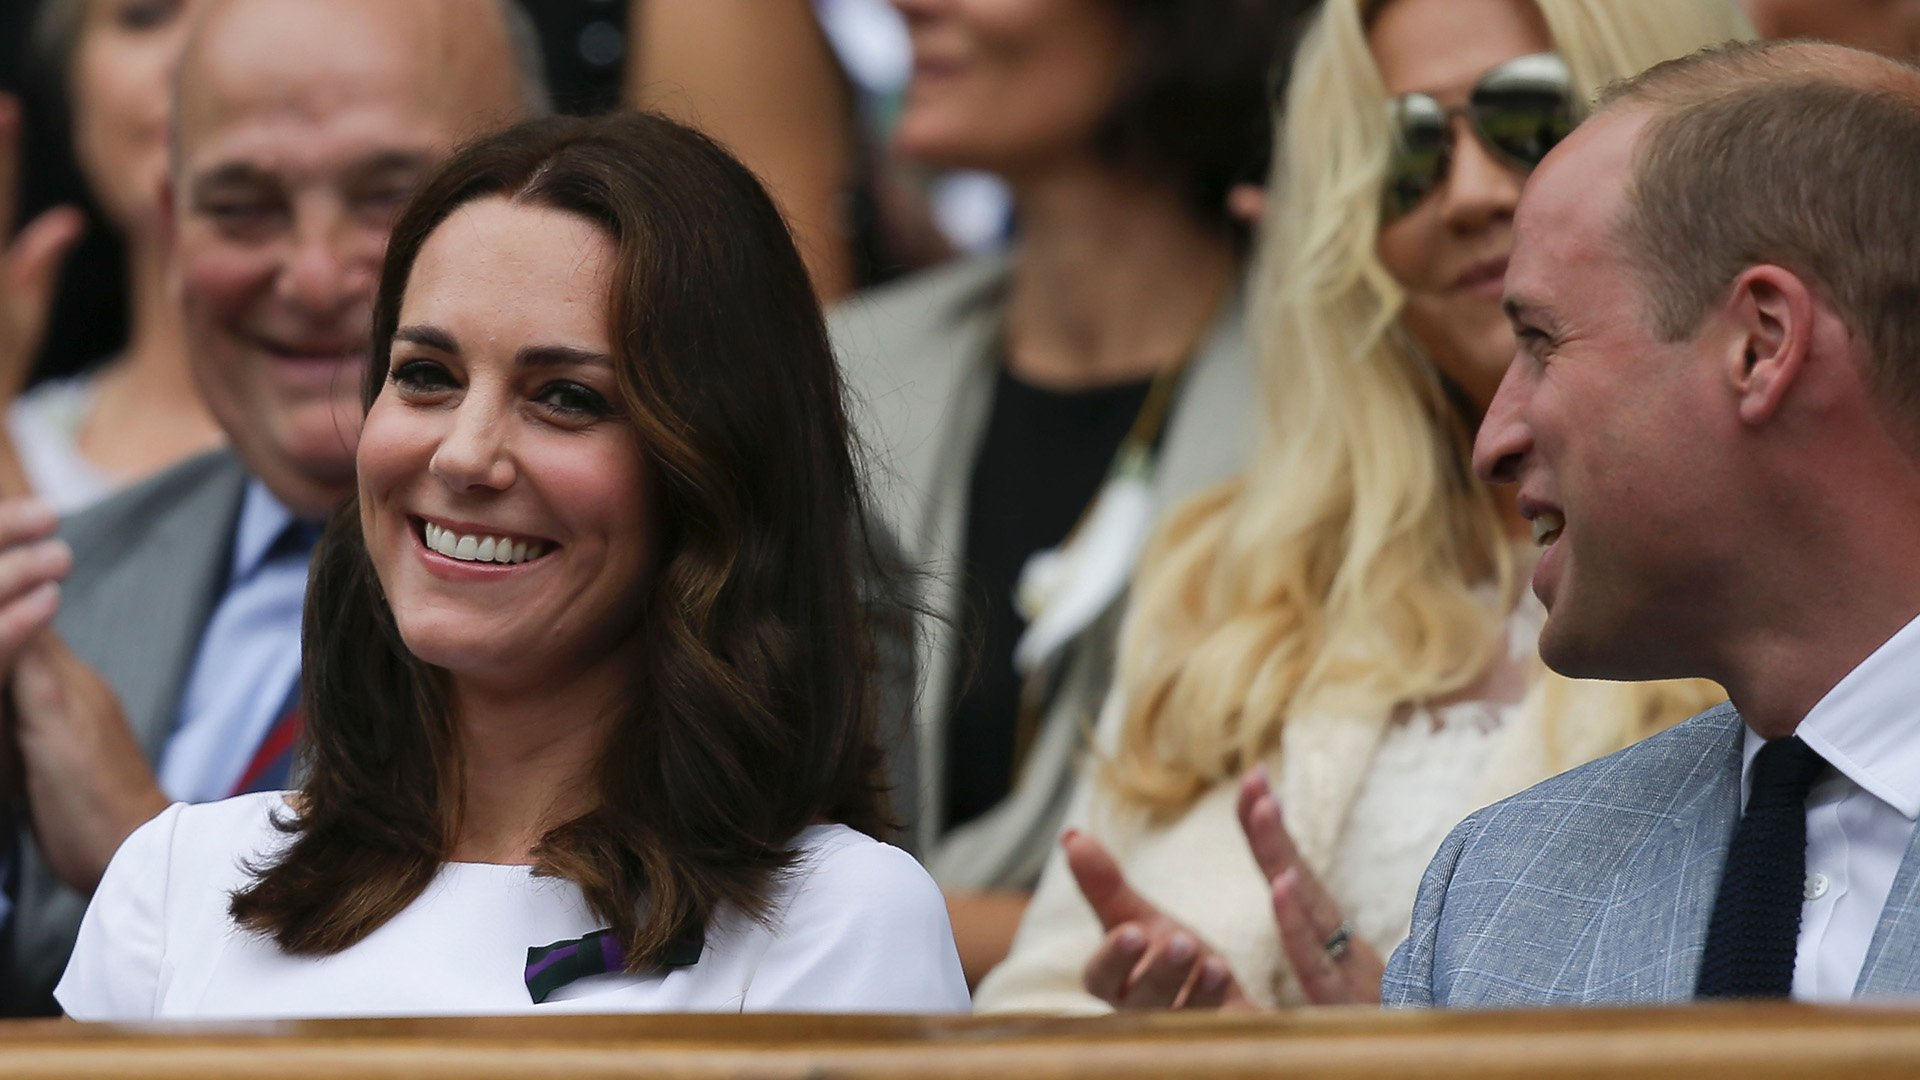 Wonderful having HRH Duke and Duchess of Cambridge at the #Wimbledon final! �� More: https://t.co/SG3JHhHp2A  #ATP https://t.co/ao7zTZAgZl